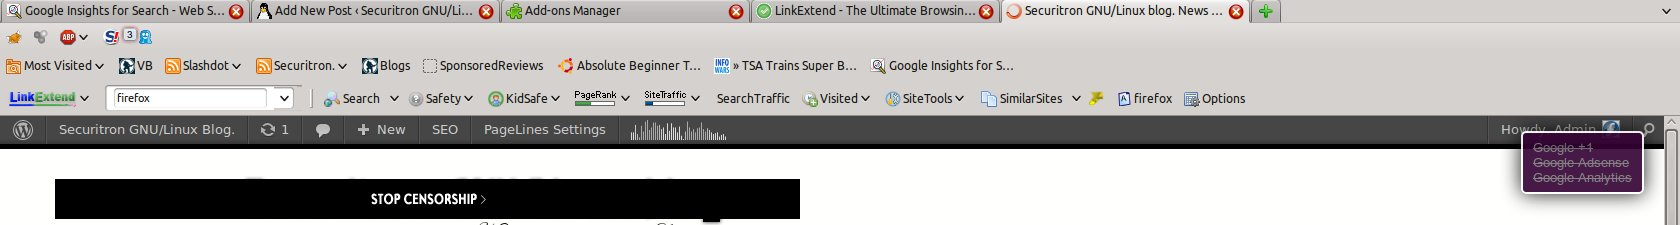 My Firefox 11.0 toolbar. Showing the extensions I have installed.